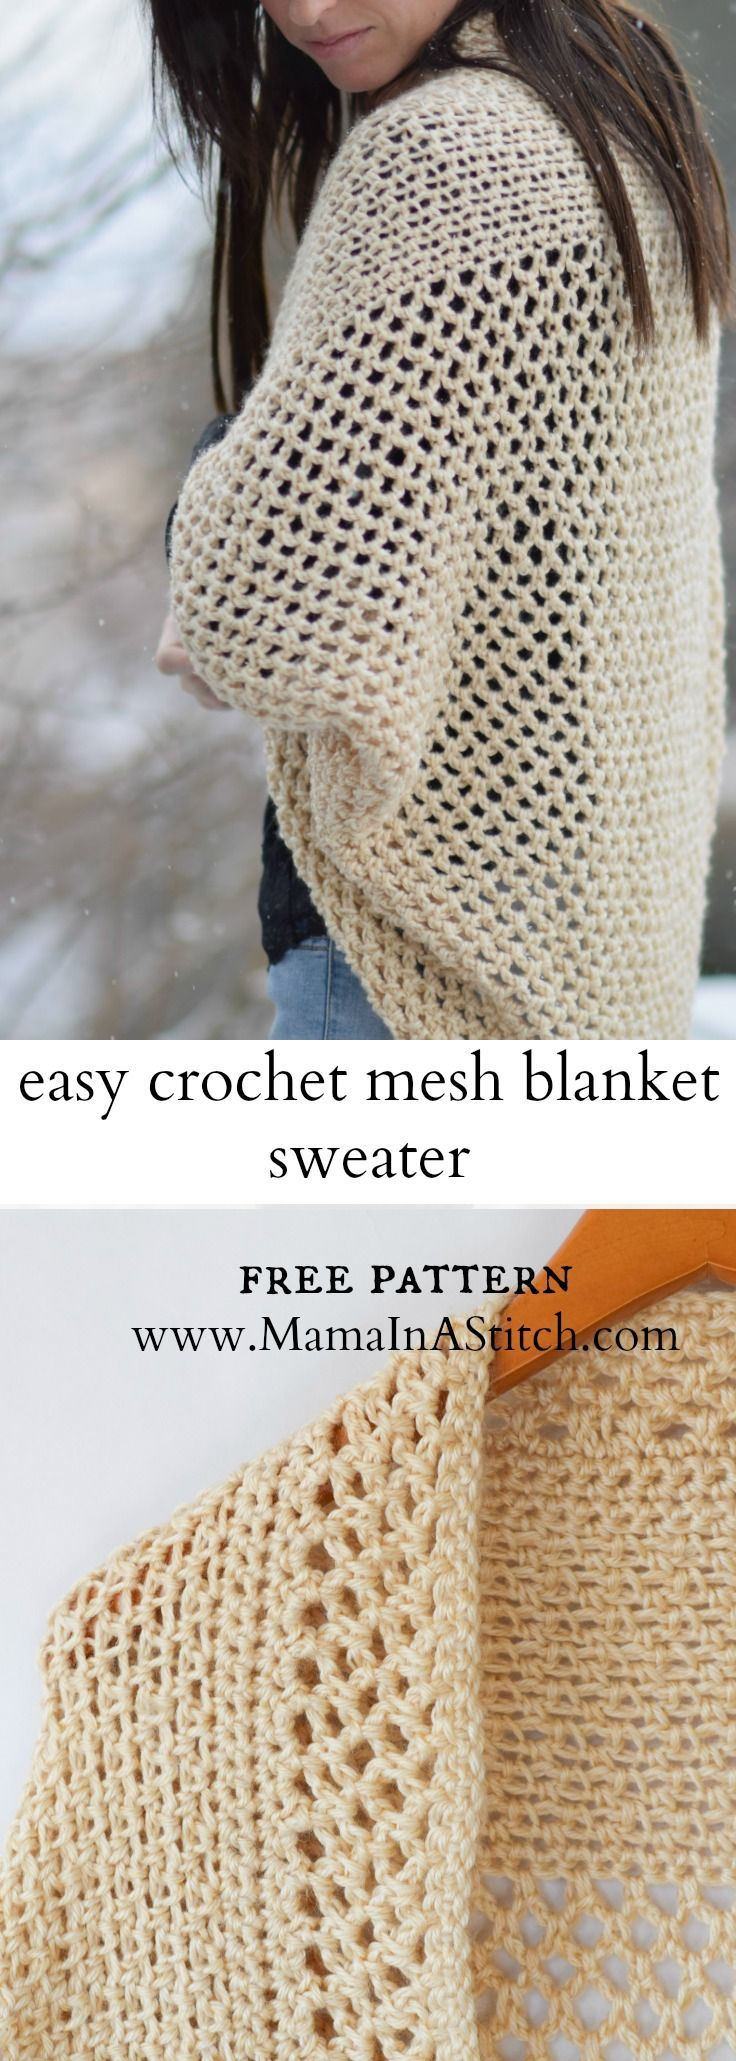 crochet-sweater-free-pattern-easy-tutorial | knitting and crochet ...